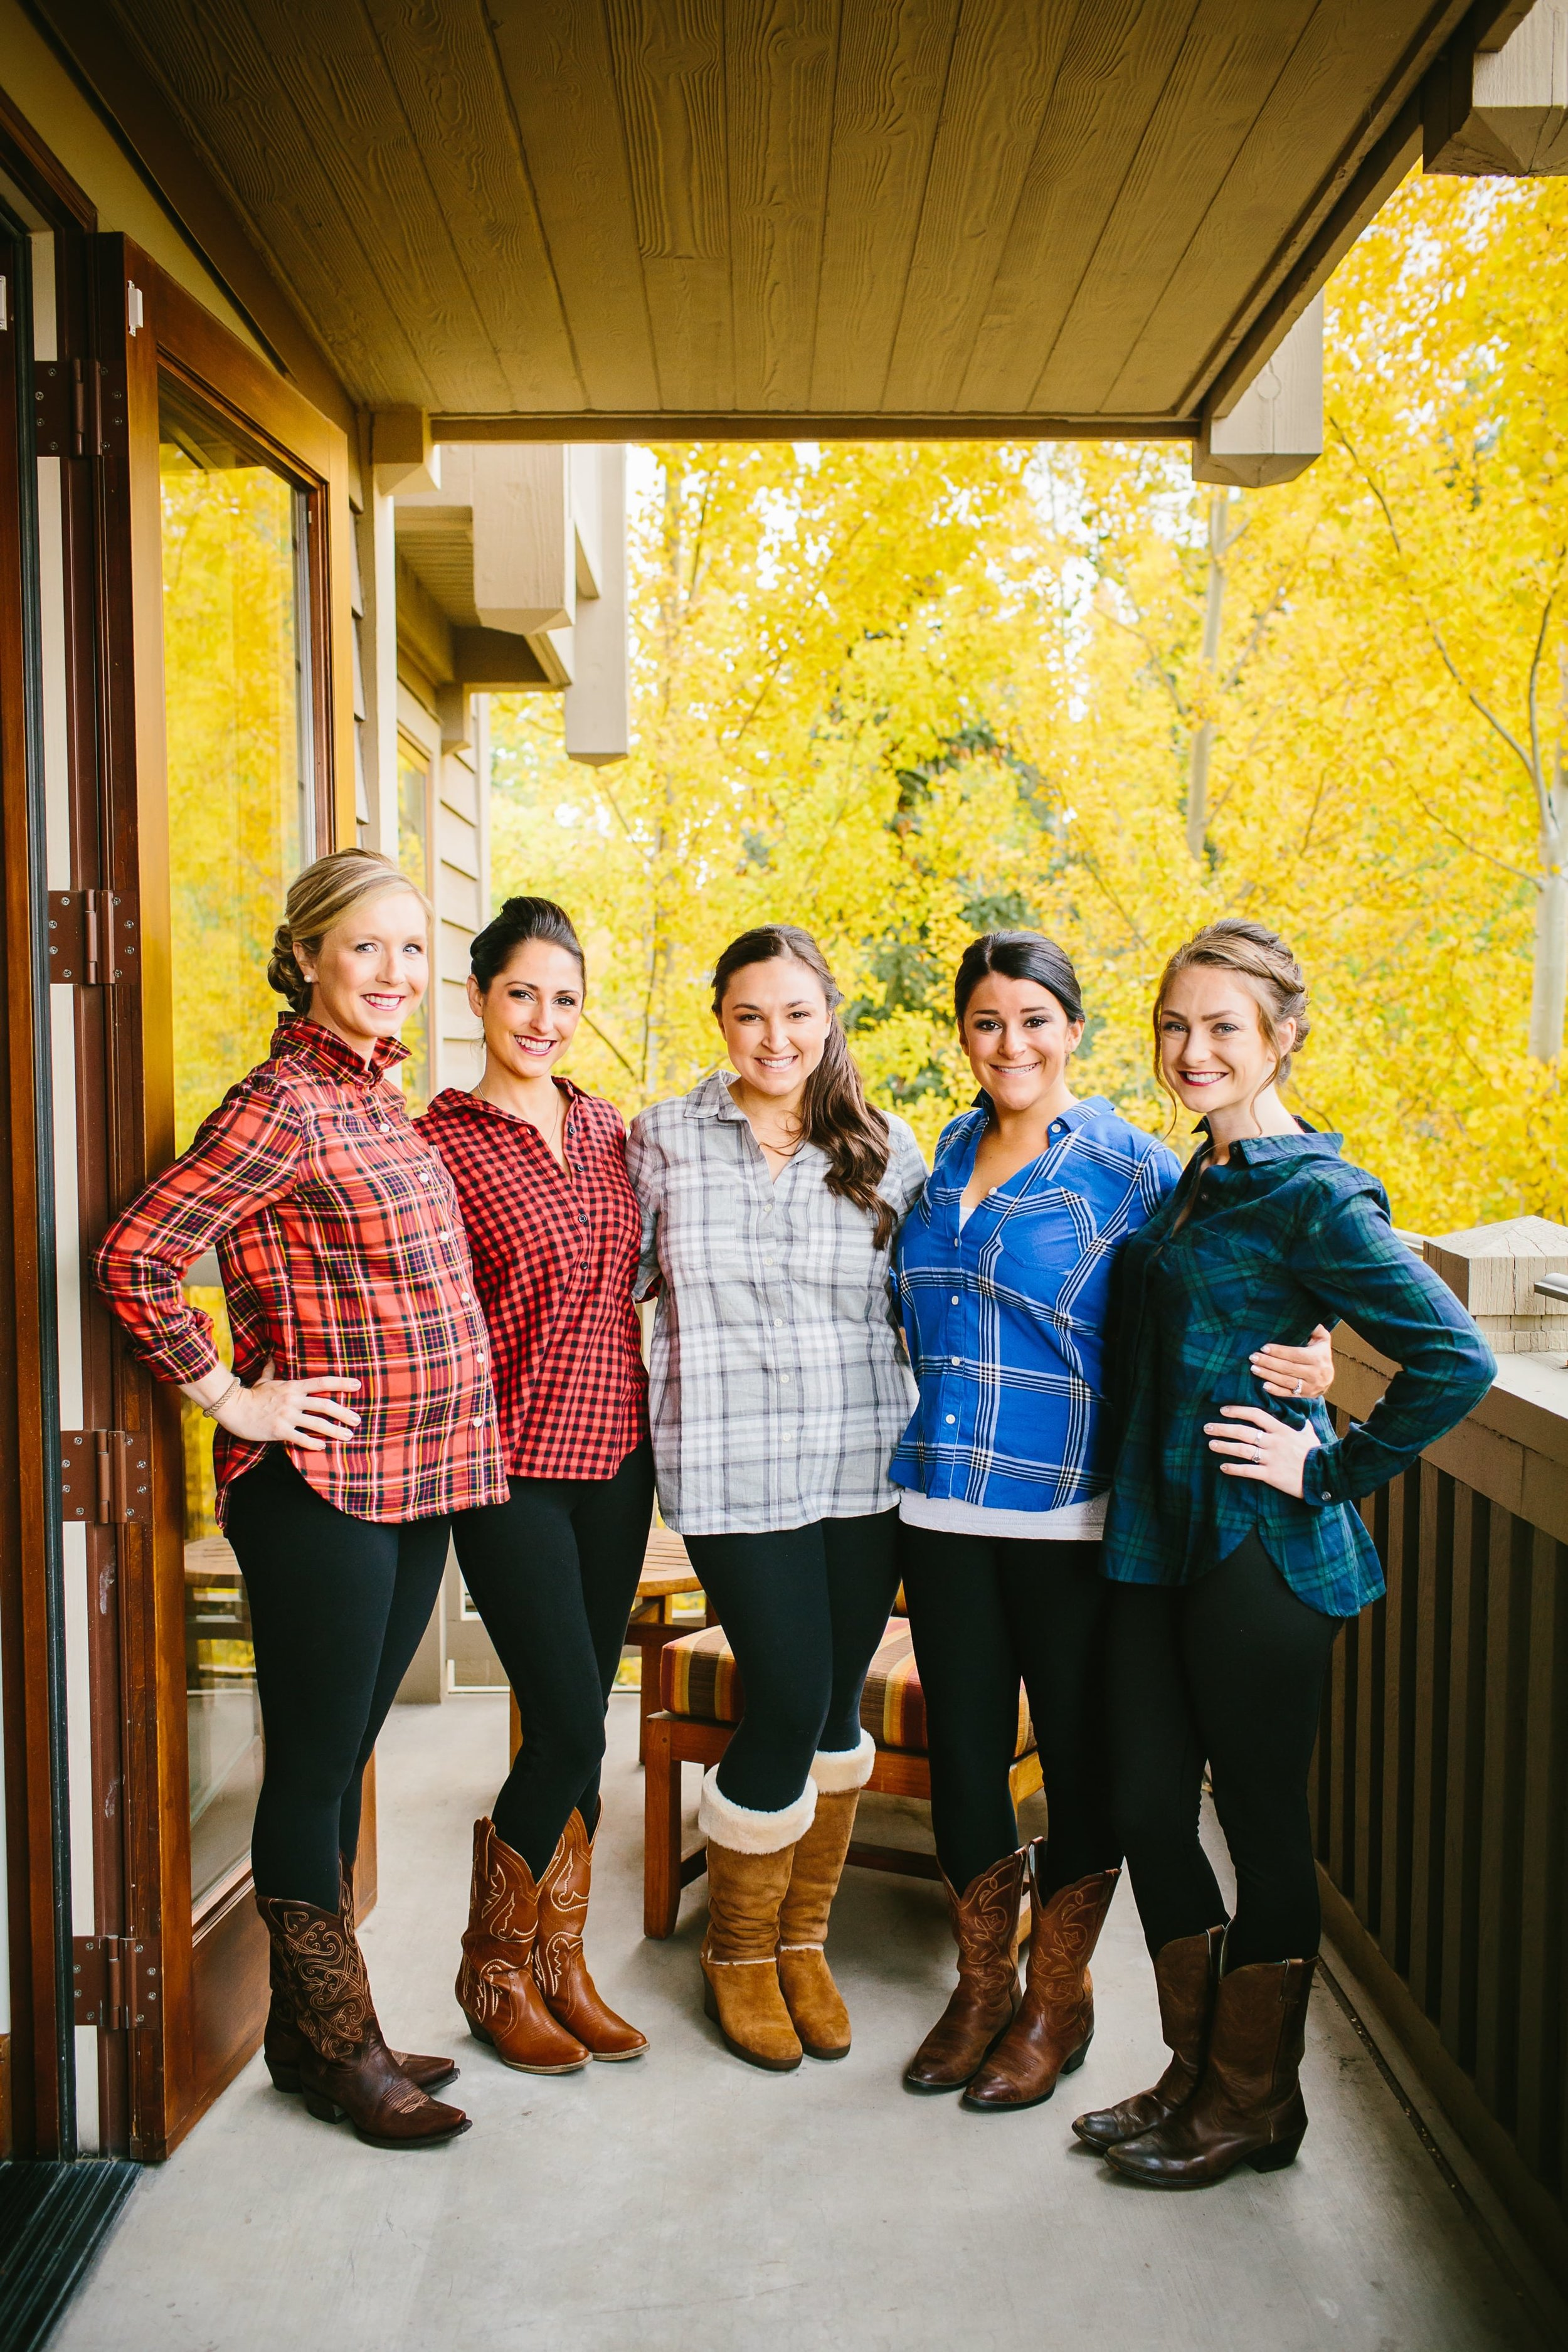 2 Tanya's bridesmaids getting ready in flannel shirts from Old Navy